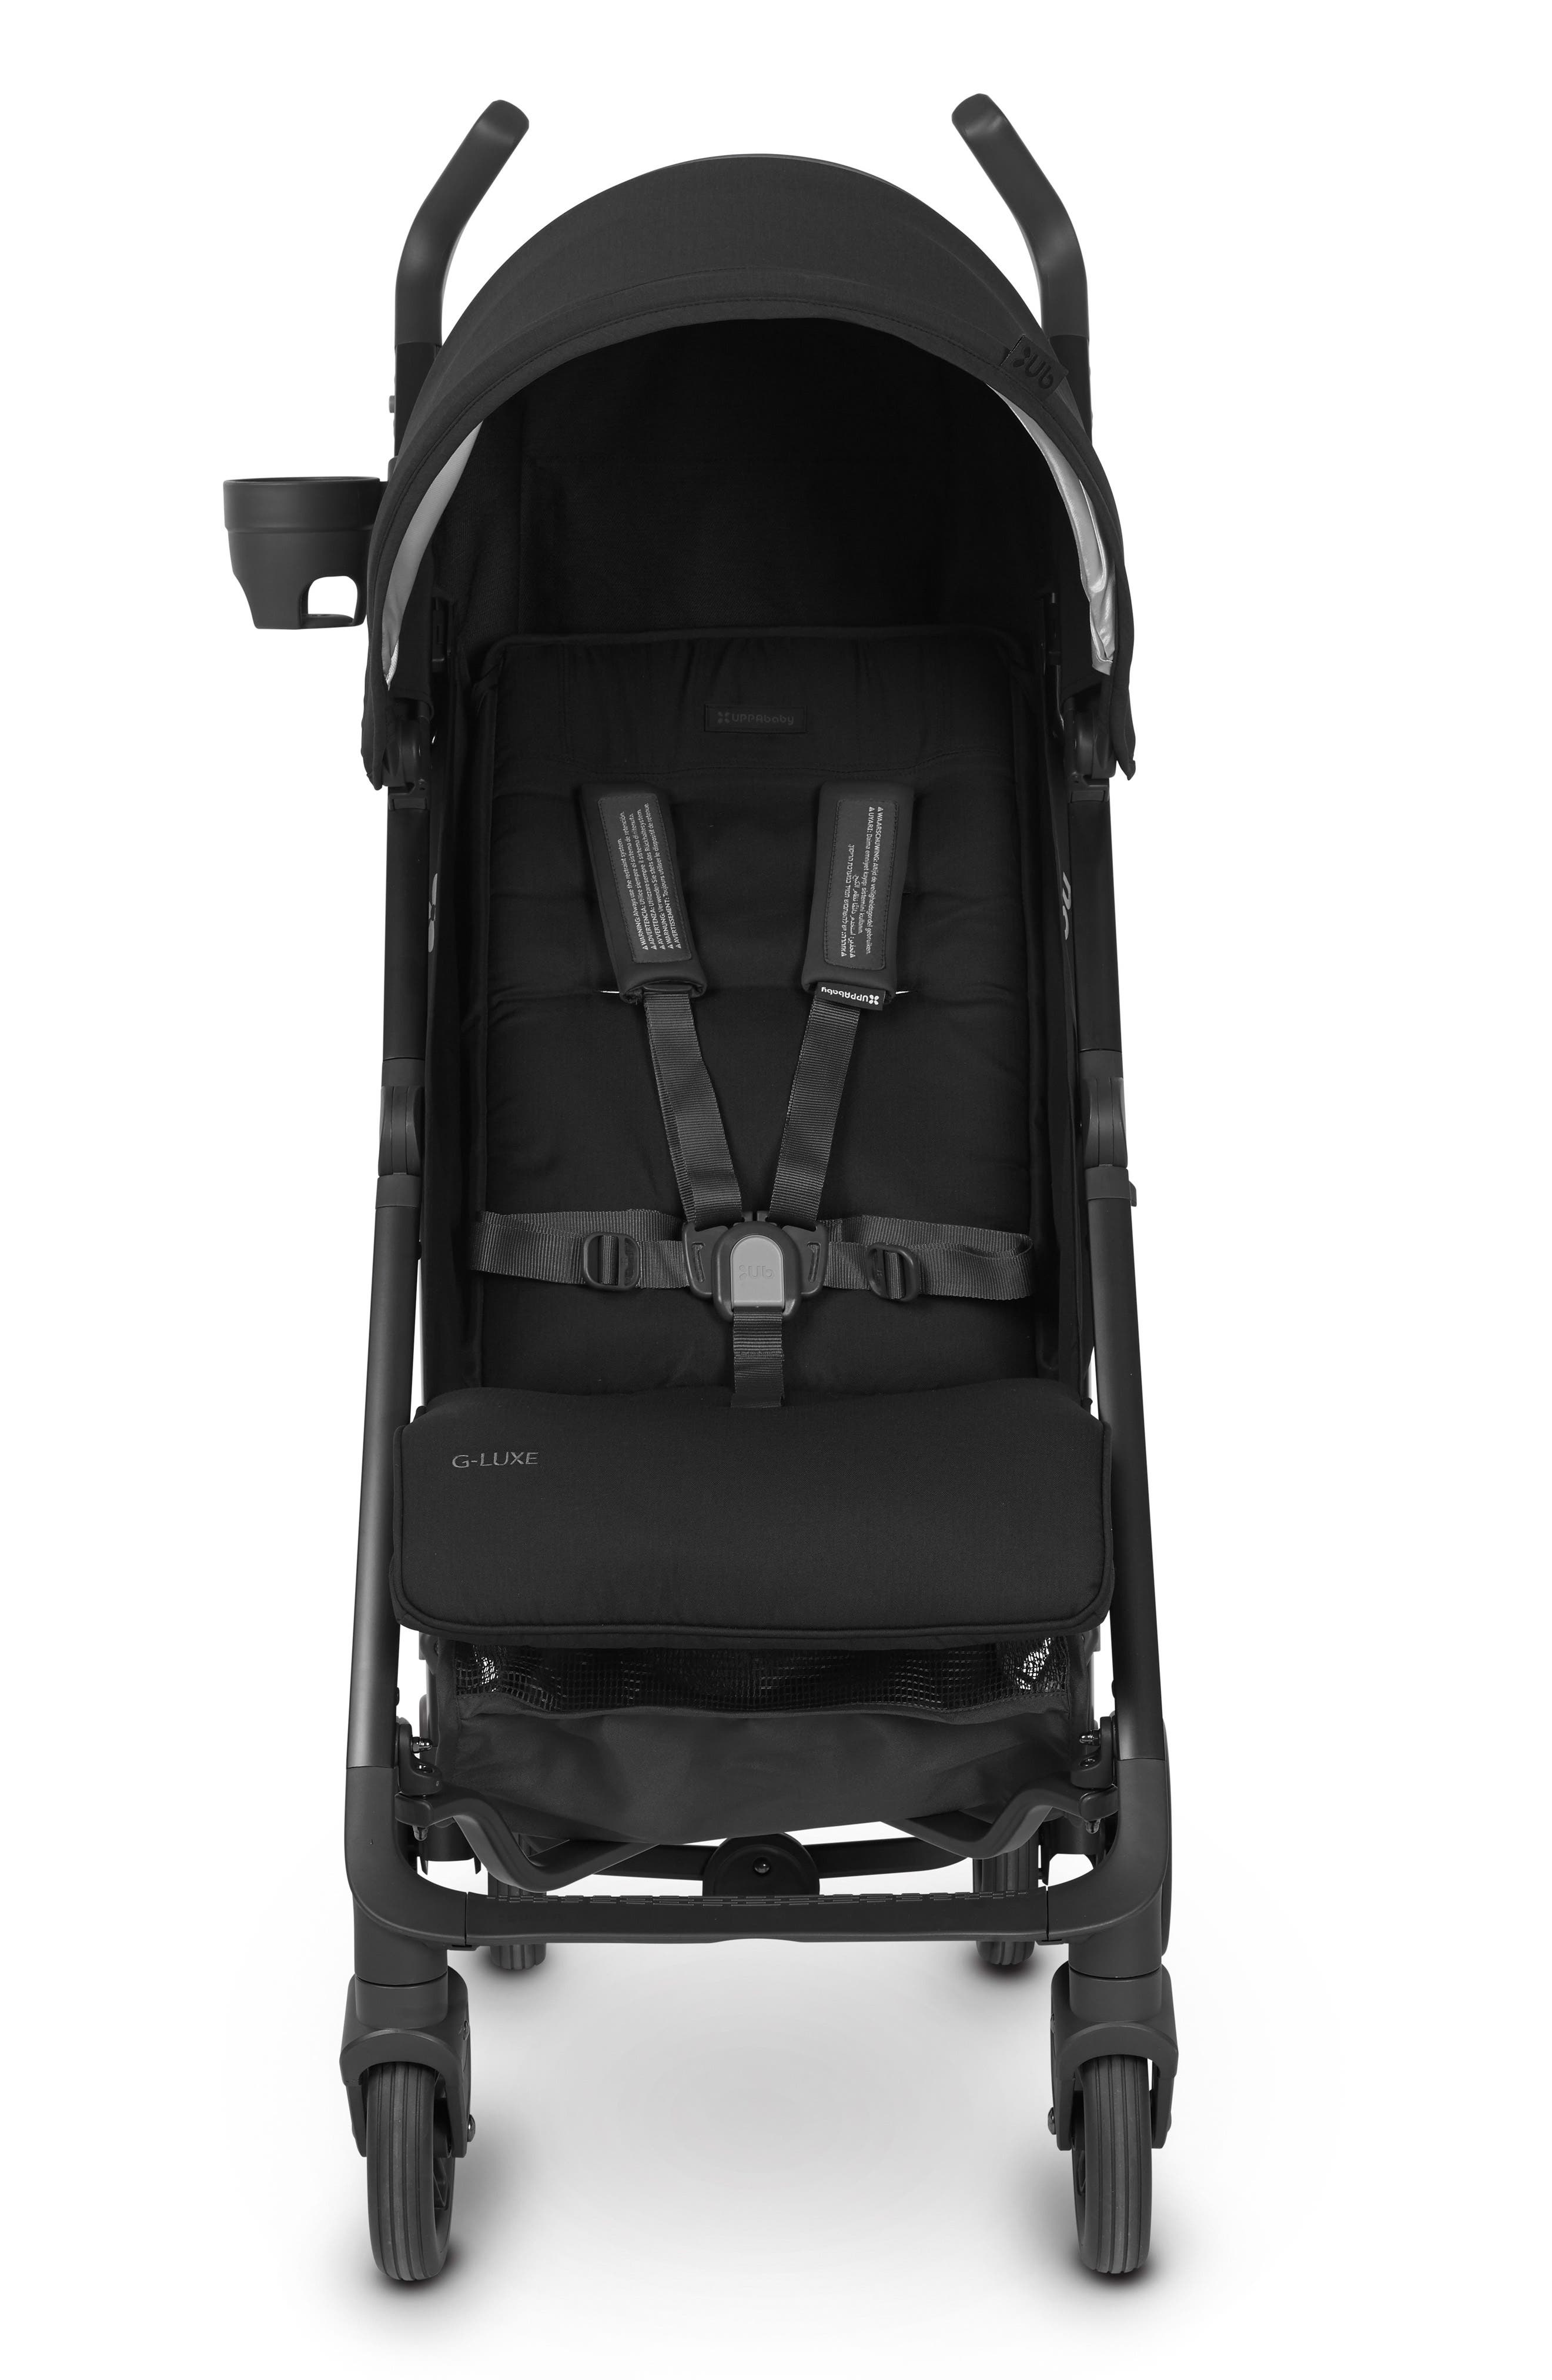 UPPABABY, G-LUXE 2018 Reclining Umbrella Stroller, Alternate thumbnail 4, color, JAKE BLACK/ CARBON